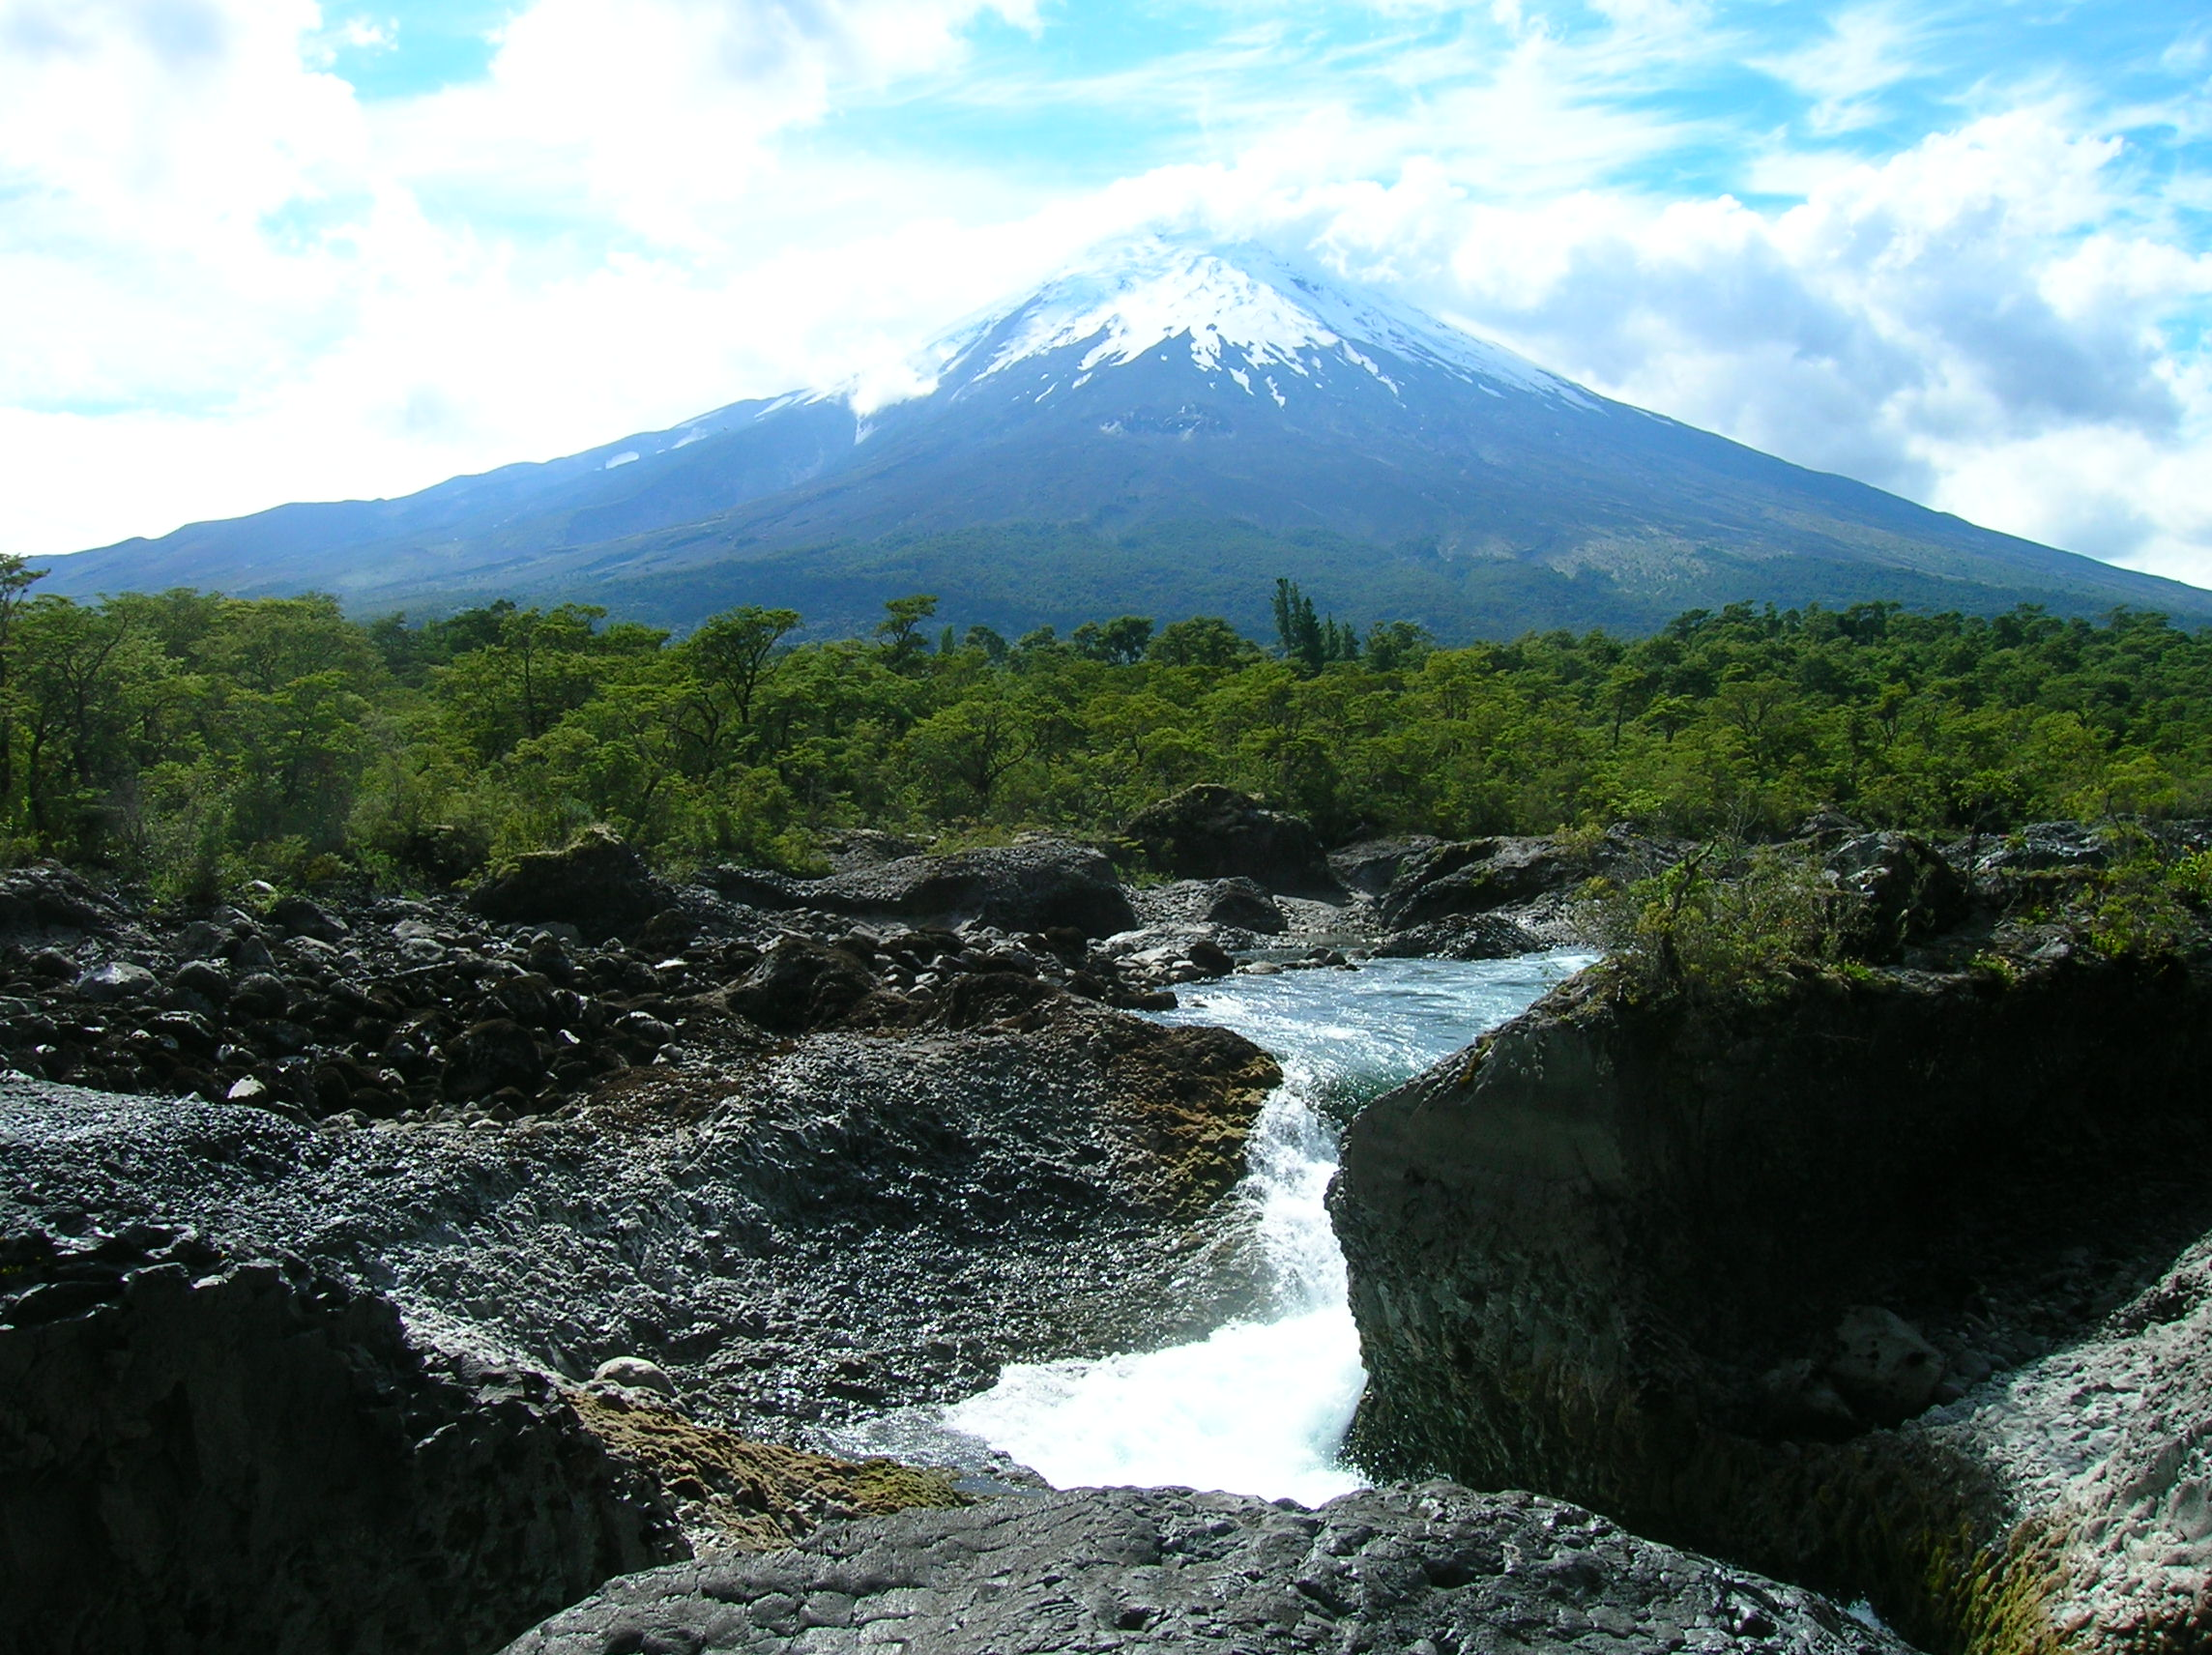 File:Volcán Osorno.jpg - Wikimedia Commons